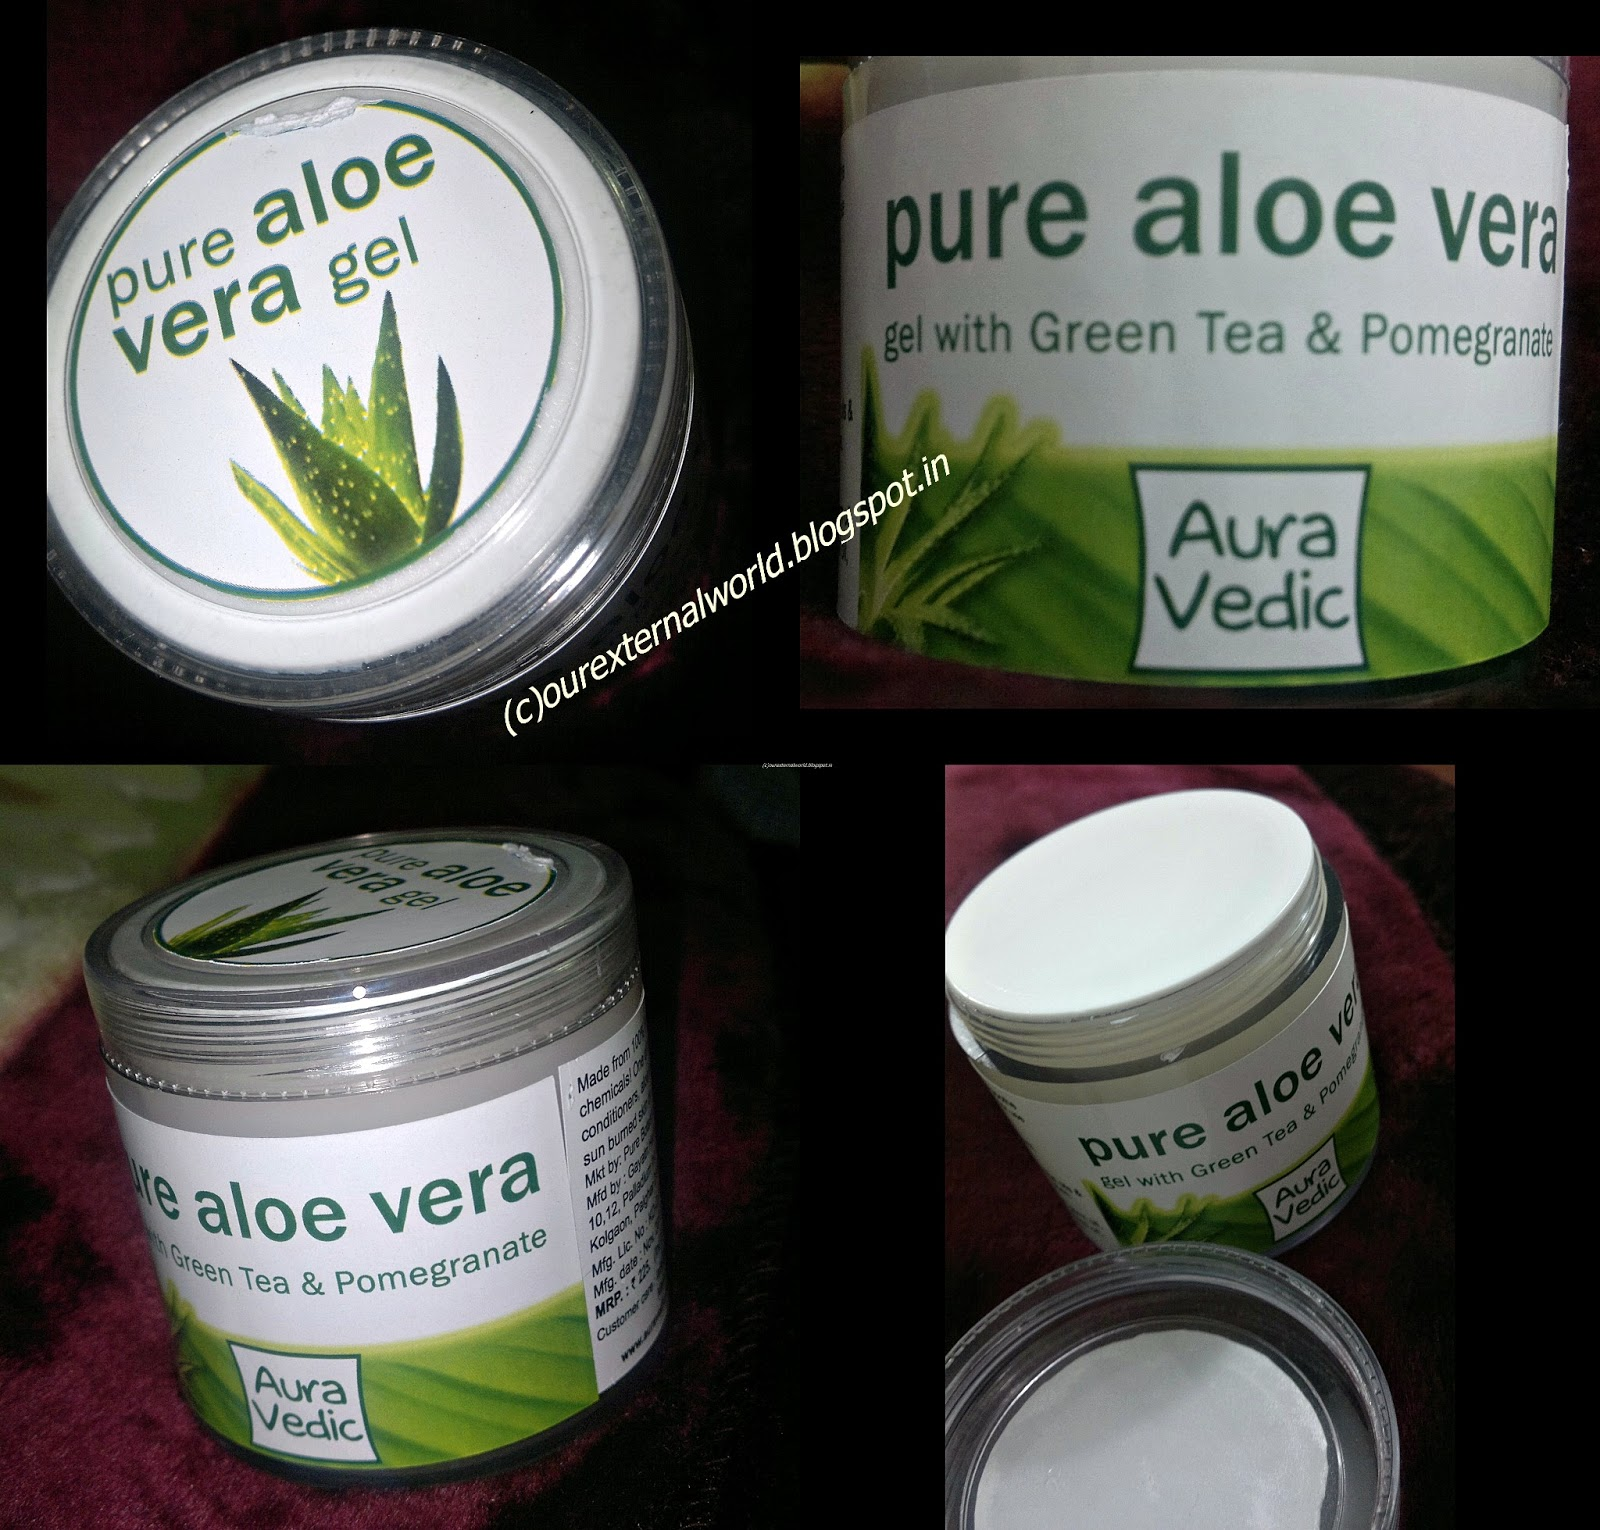 aura vedic 39 s pure aloe vera gel review. Black Bedroom Furniture Sets. Home Design Ideas